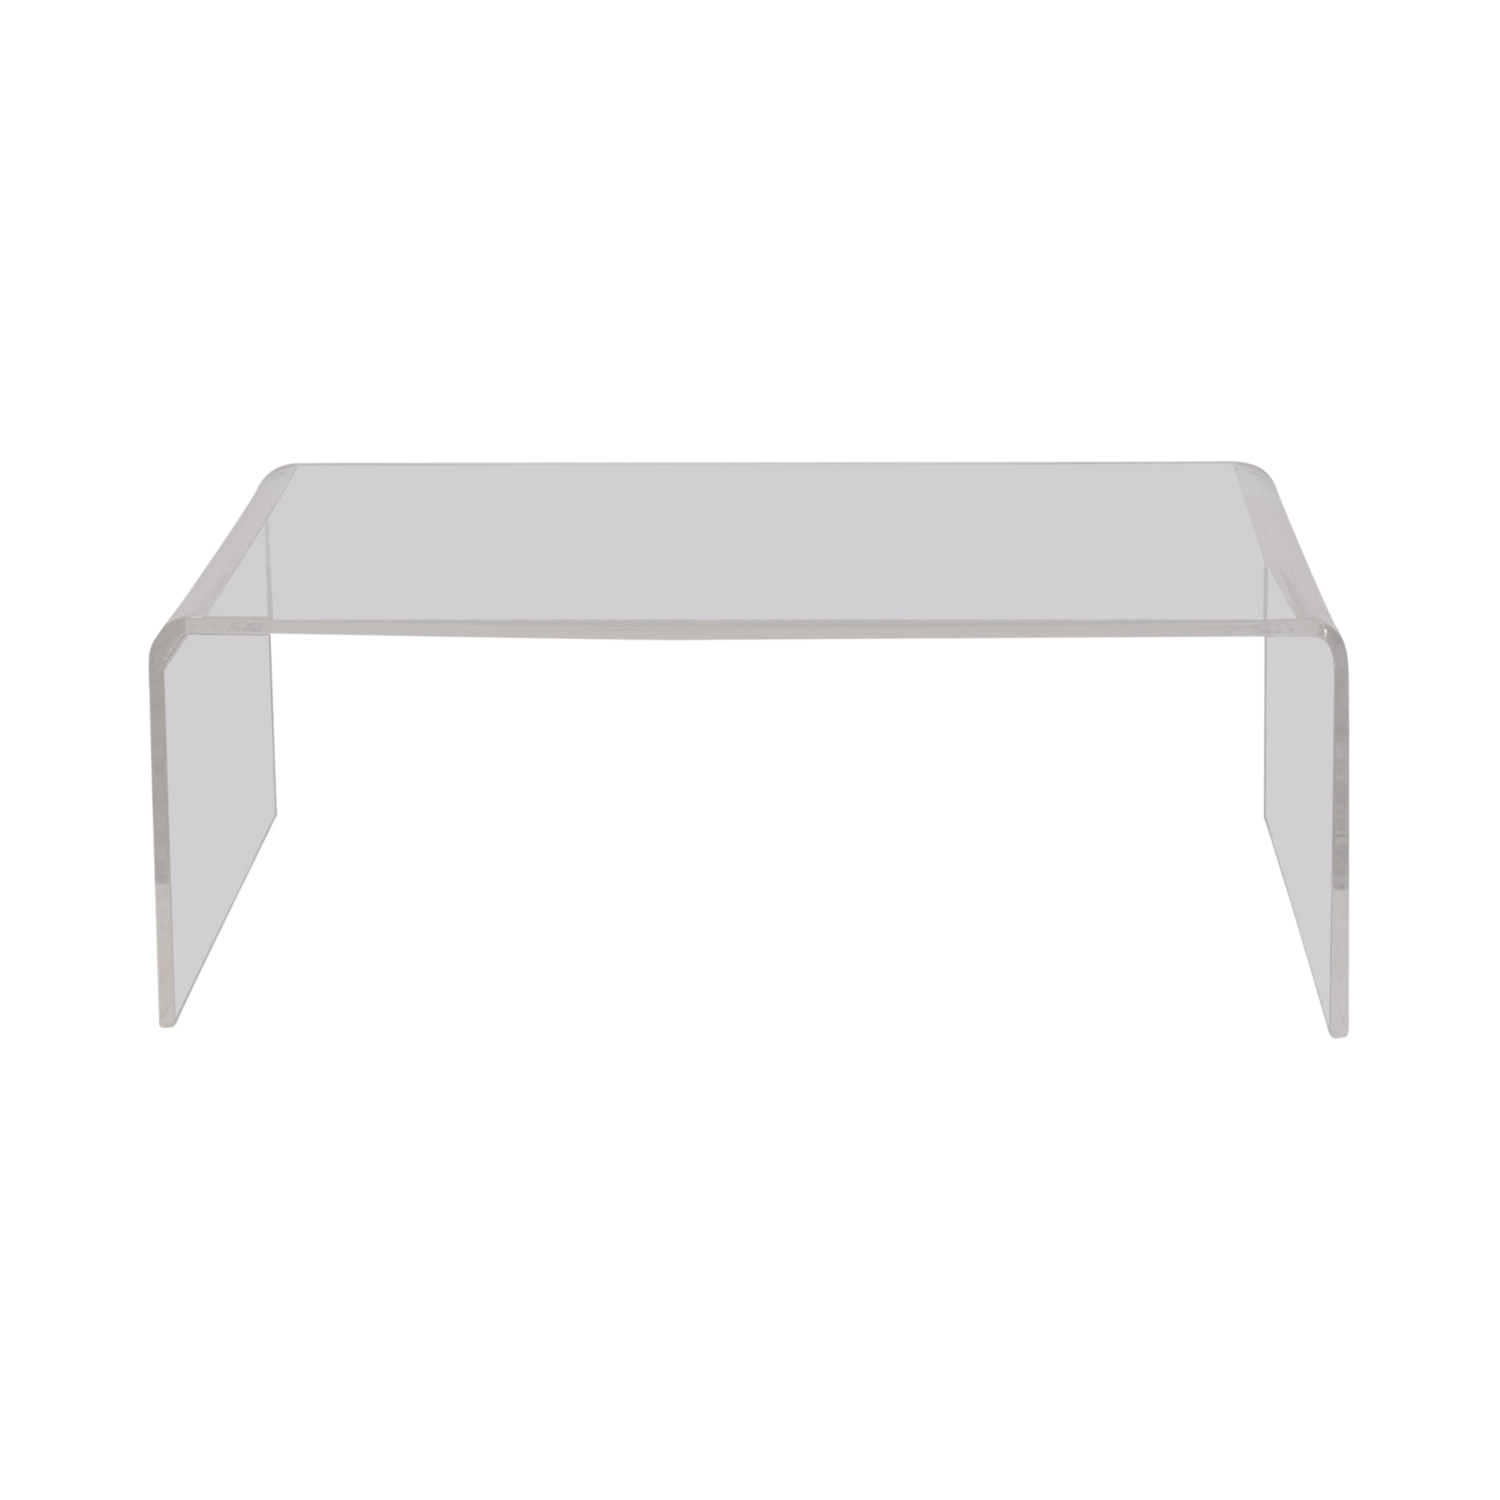 Most Popular Peekaboo Acrylic Tall Coffee Tables Inside Peekaboo Acrylic Coffee Table Clear Coffee Table, Coffee And – Tina (View 14 of 20)